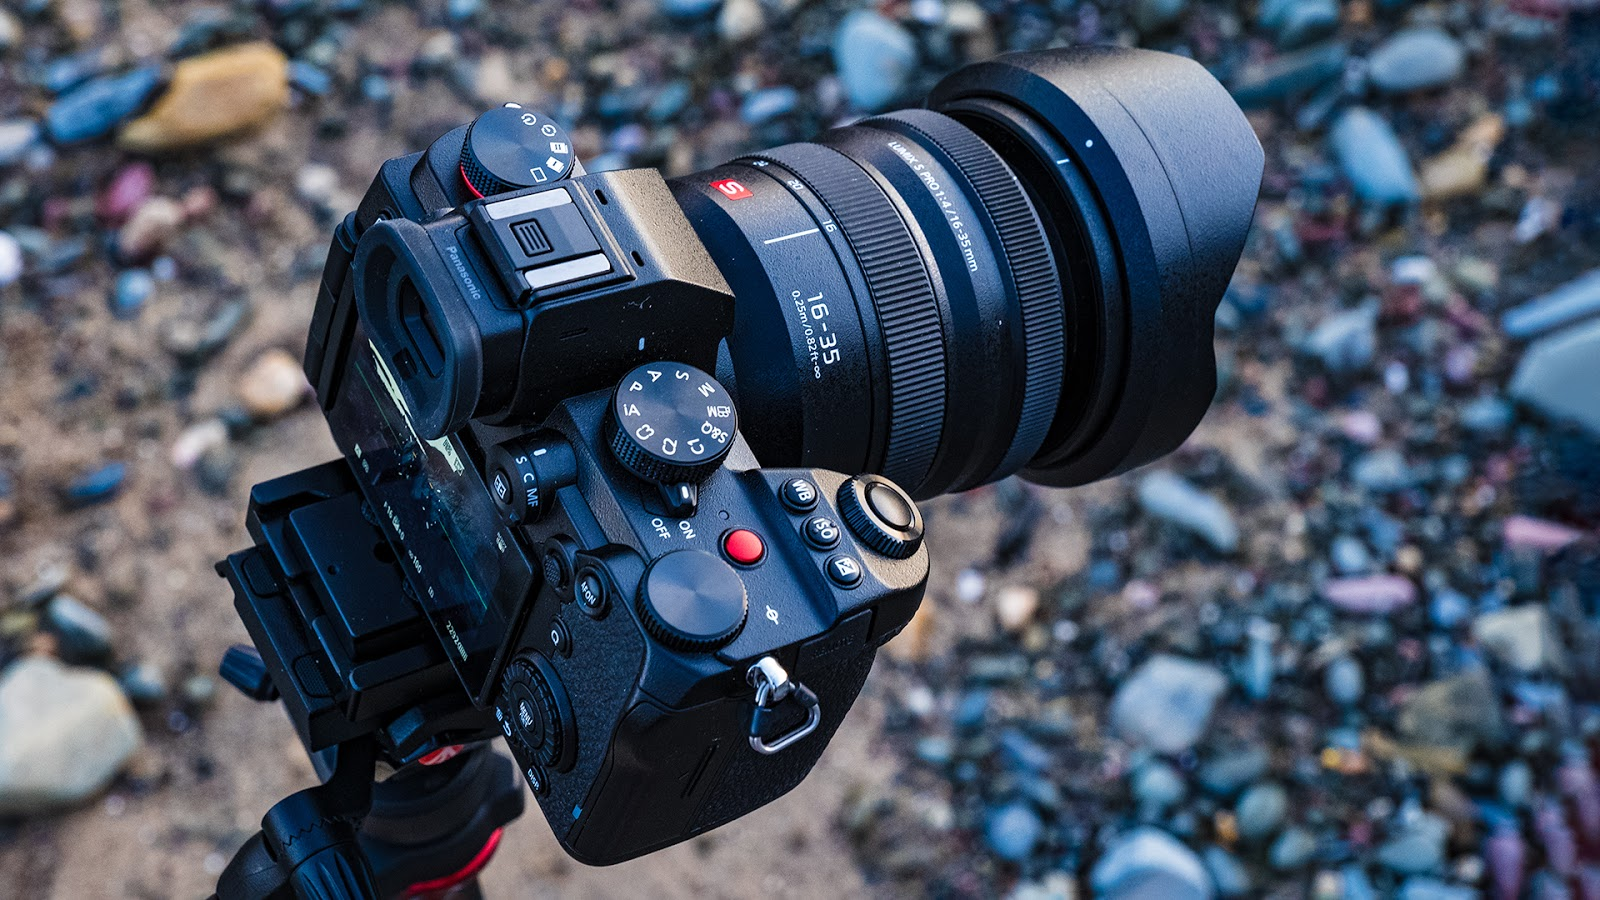 A first hands on with the Panasonic S5 mirrorless camera.